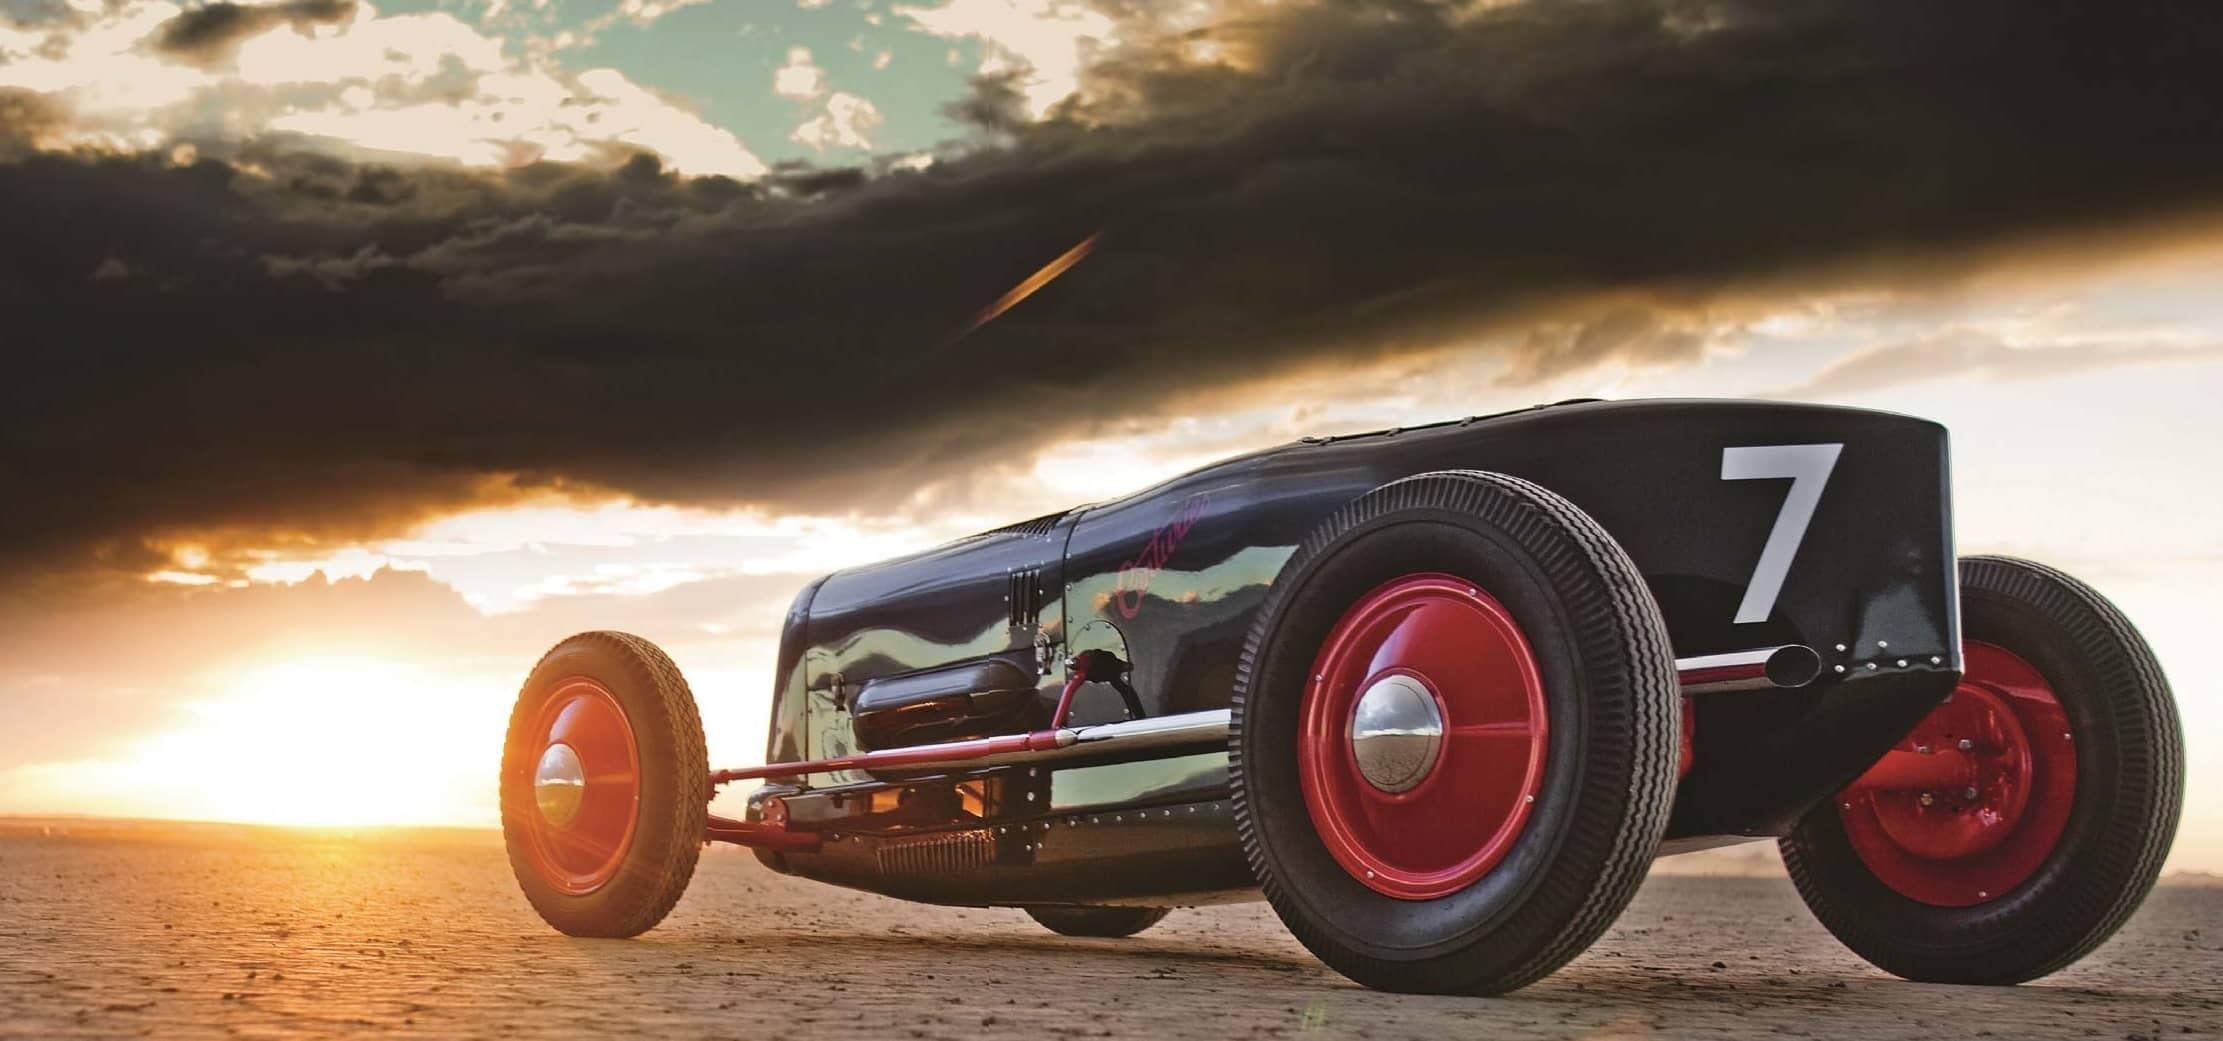 THIS 150 MPH HOT ROD CHANGED HISTORY